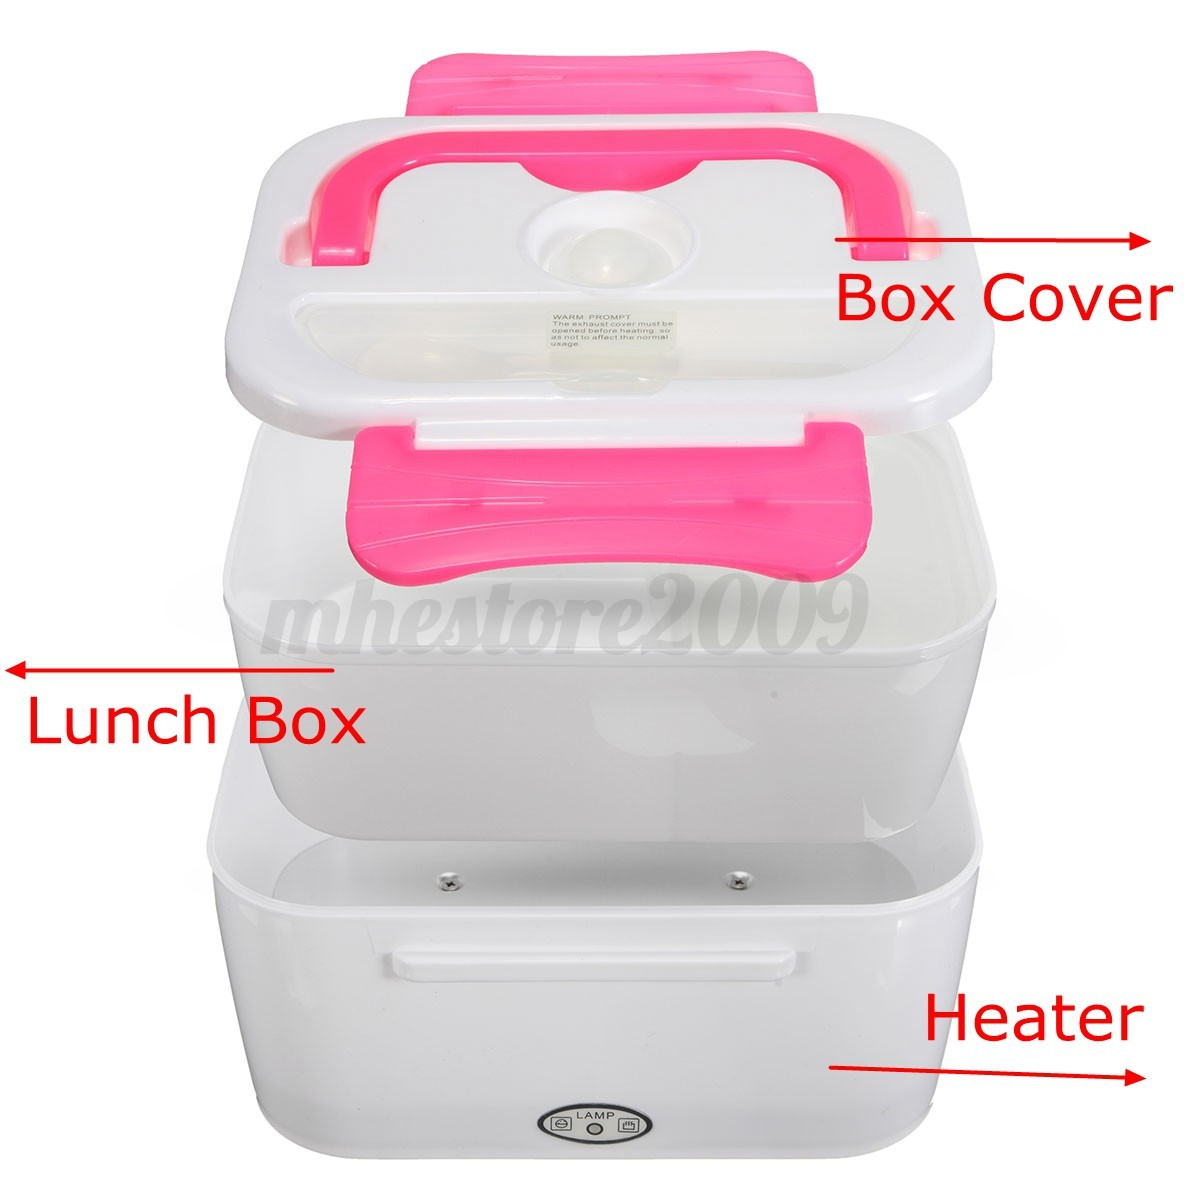 new 220v portable compact electric heated lunch food warmer box bento box 1050ml ebay. Black Bedroom Furniture Sets. Home Design Ideas